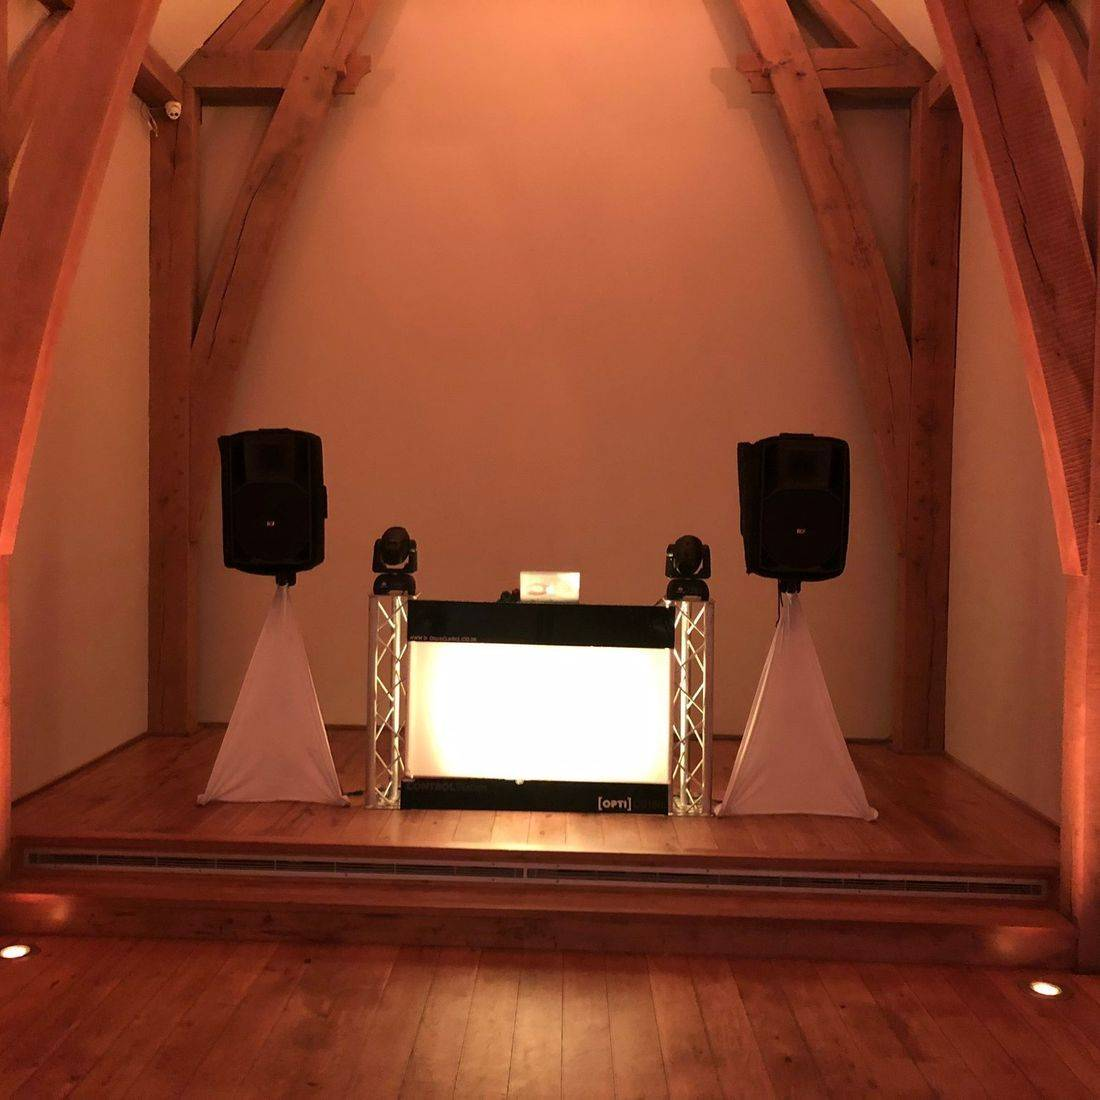 The Mill Barns #Worcesterhsire #wedding #dj #weddingentertainment #barn #barnwedding